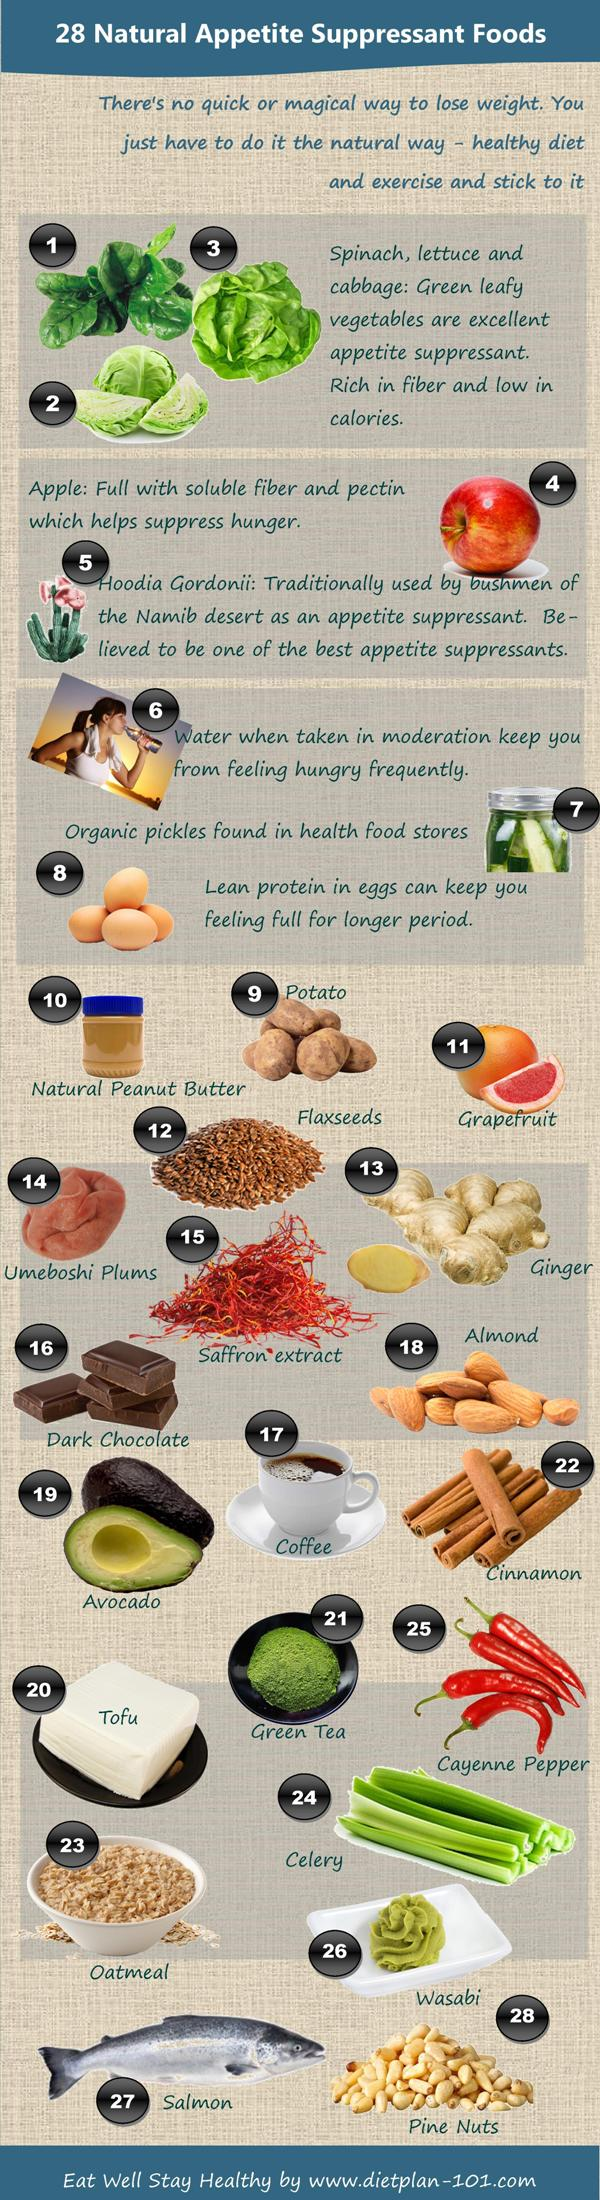 28 Natural Appetite Suppressant Food